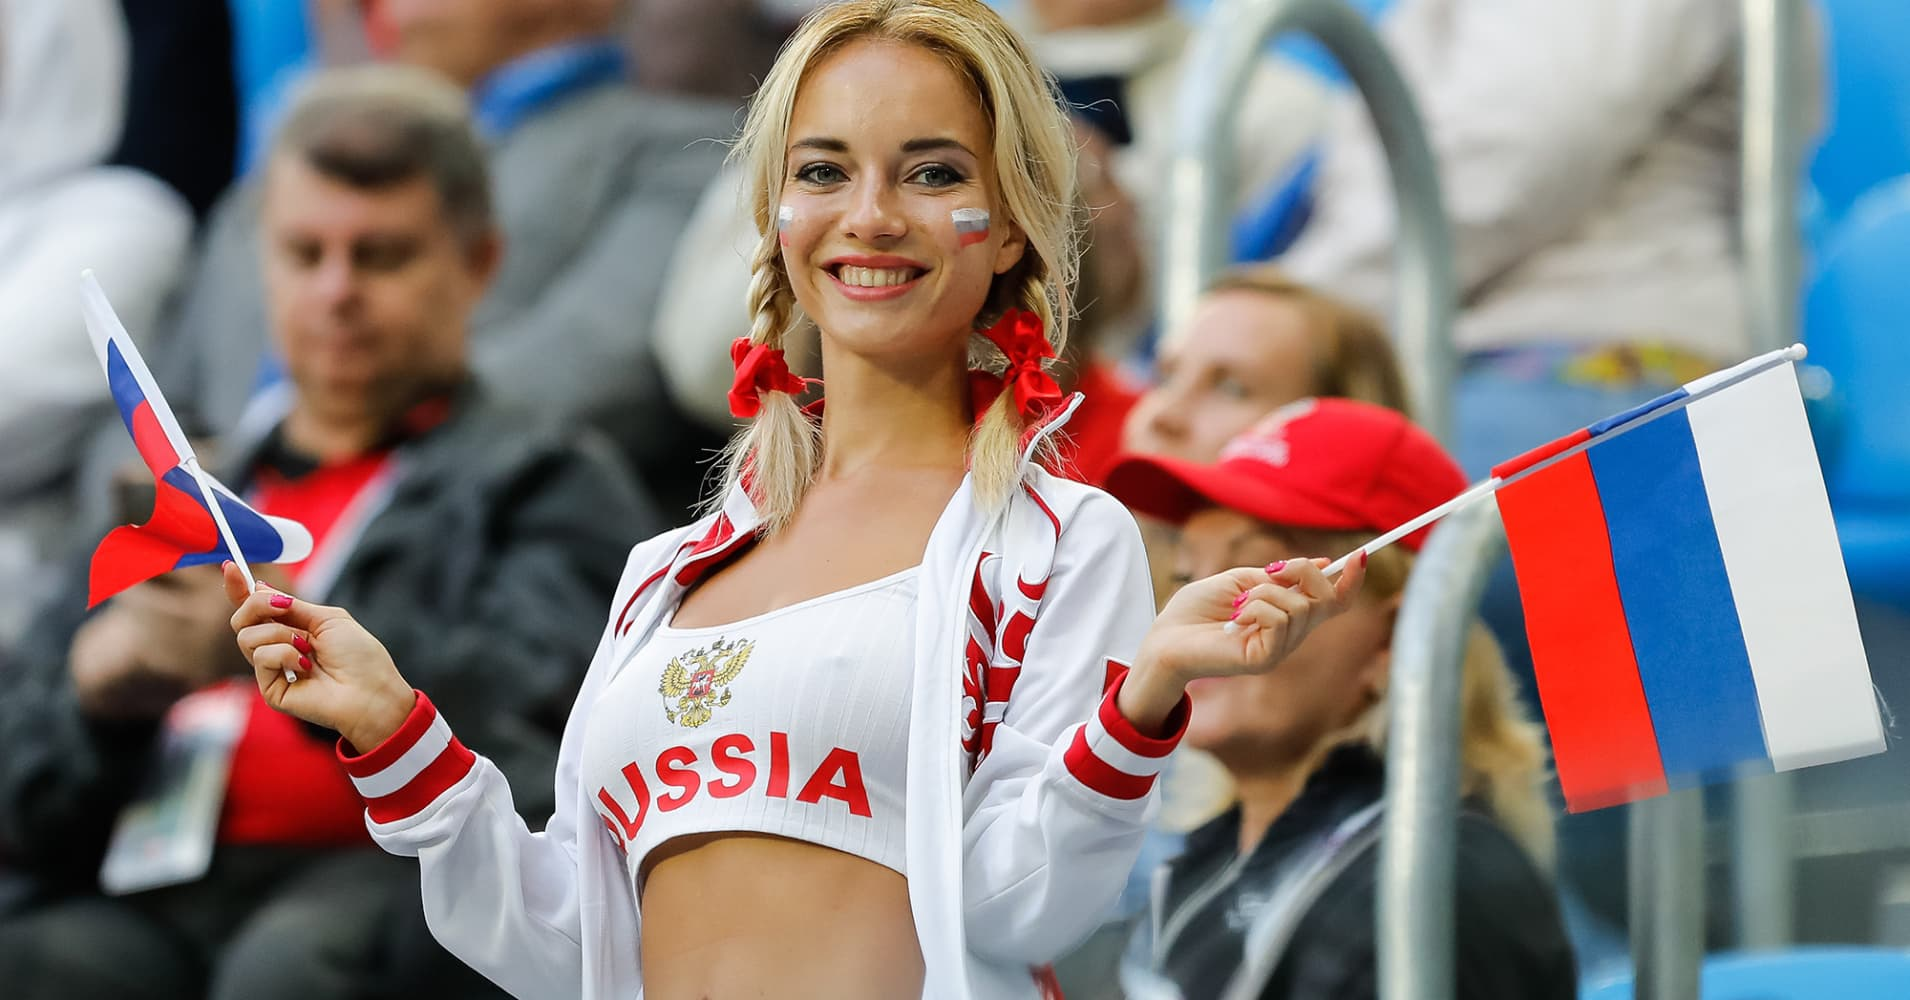 Putin basks in the glory of a World Cup that has broken stereotypes and ripped up the rulebook